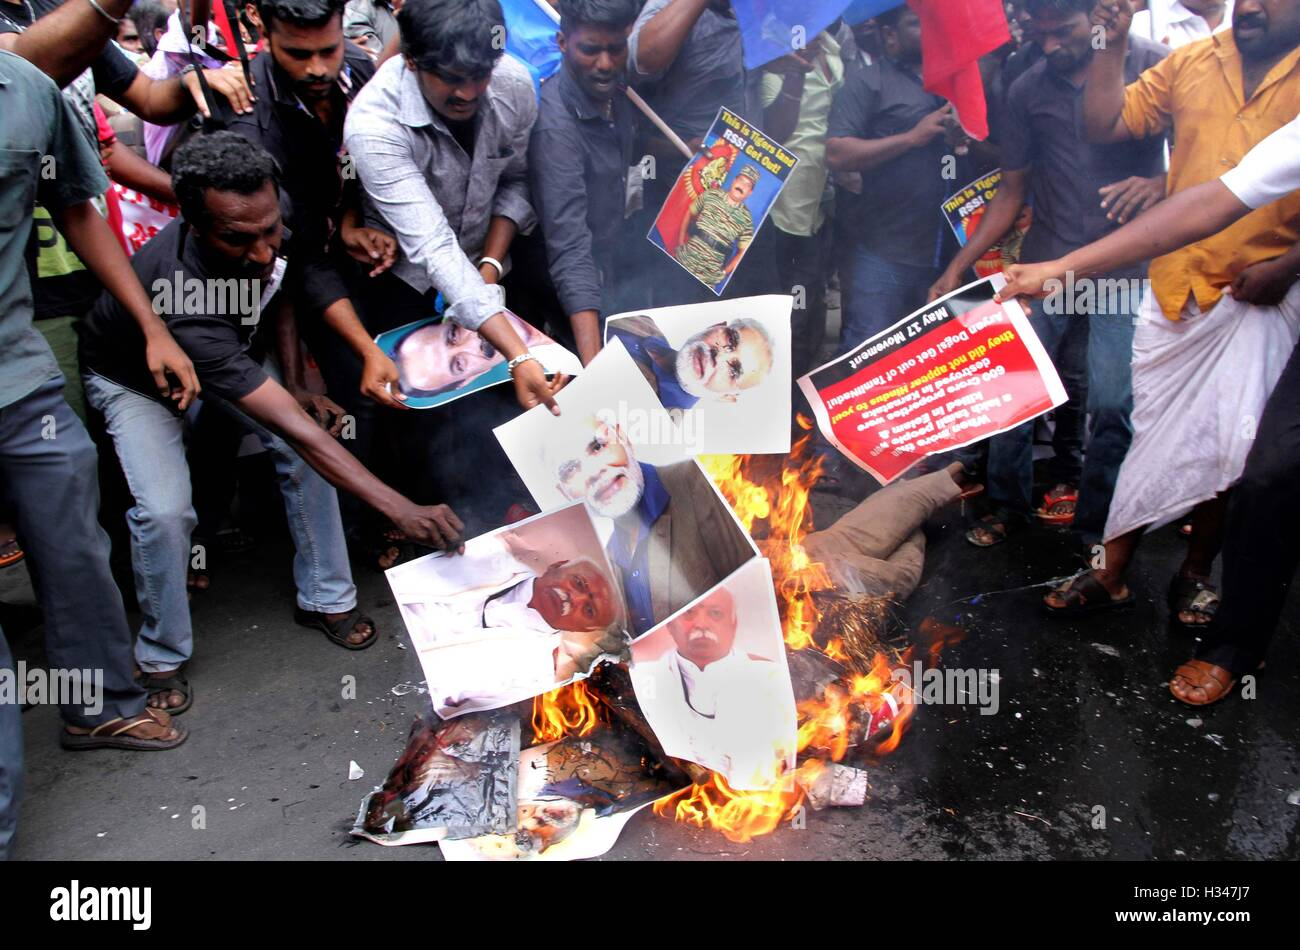 Supporters of several Tamil nationalist parties, burn effigies stage protest against the Kaveri water sharing issue - Stock Image